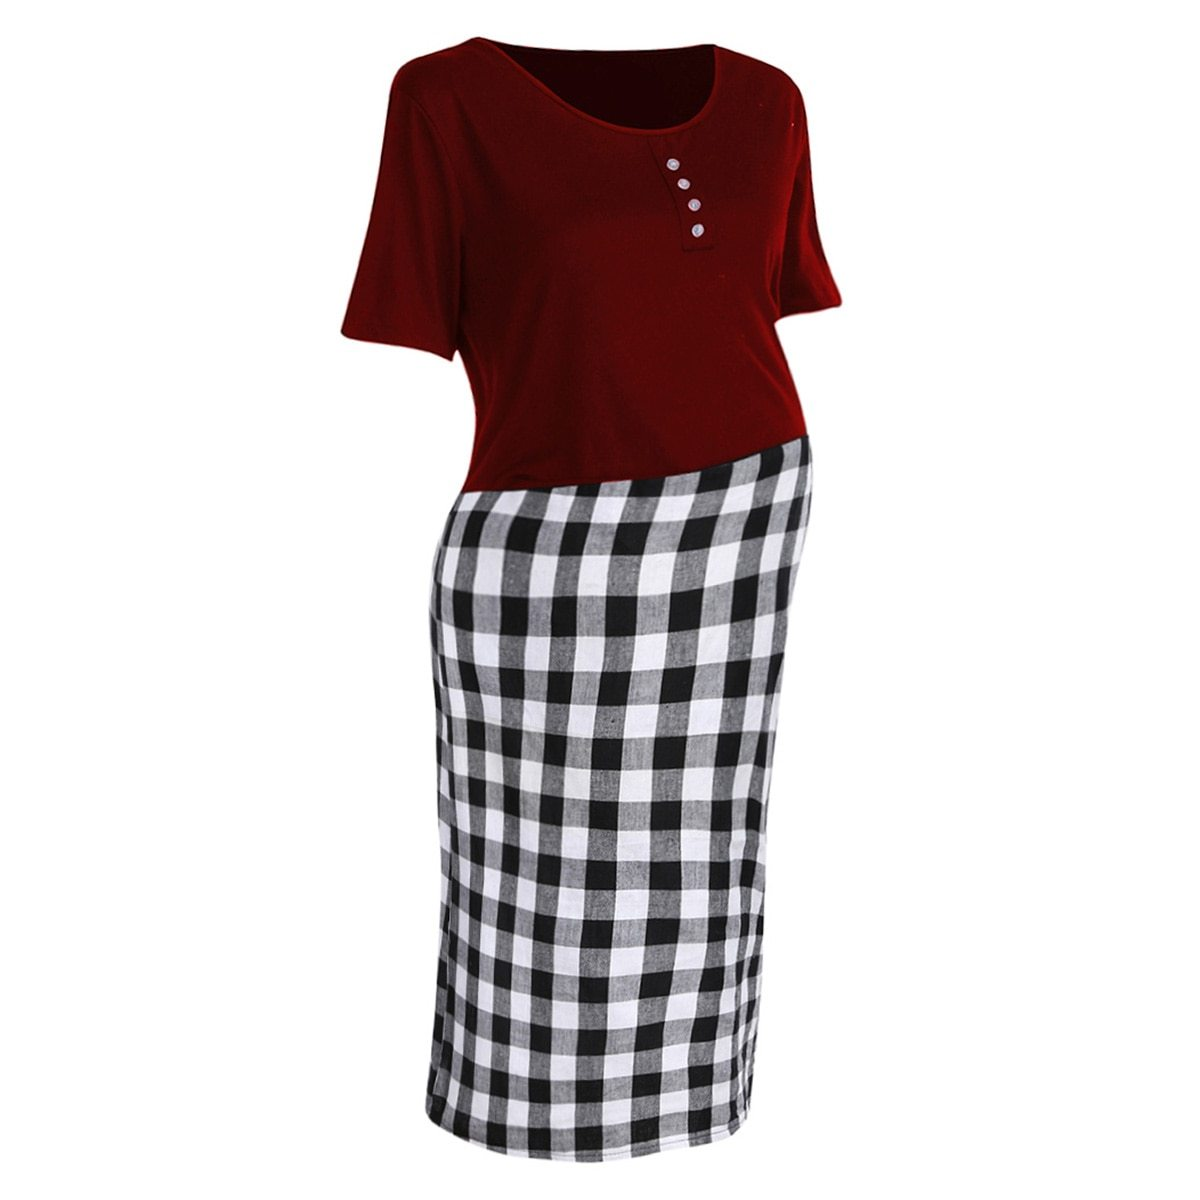 Maternity Dress Checkered Patchwork O Neck Short Sleeve Dress image 2